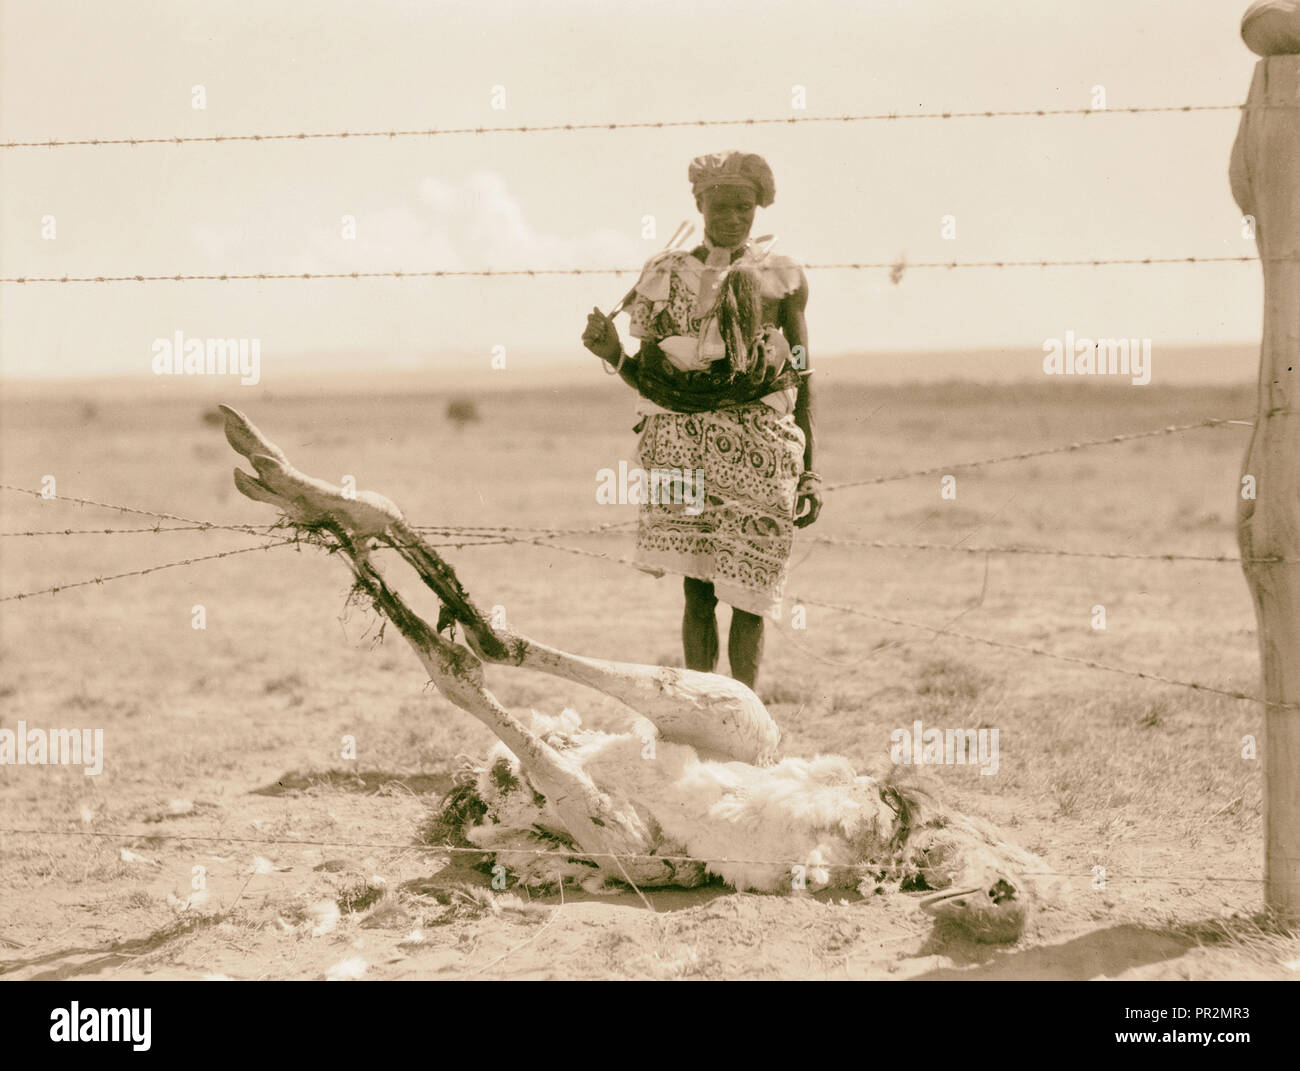 Kenya Colony. Rift Valley and en route to Nairobi. Ostrich succumbed by entanglement in barbed wire. 1936, Kenya - Stock Image